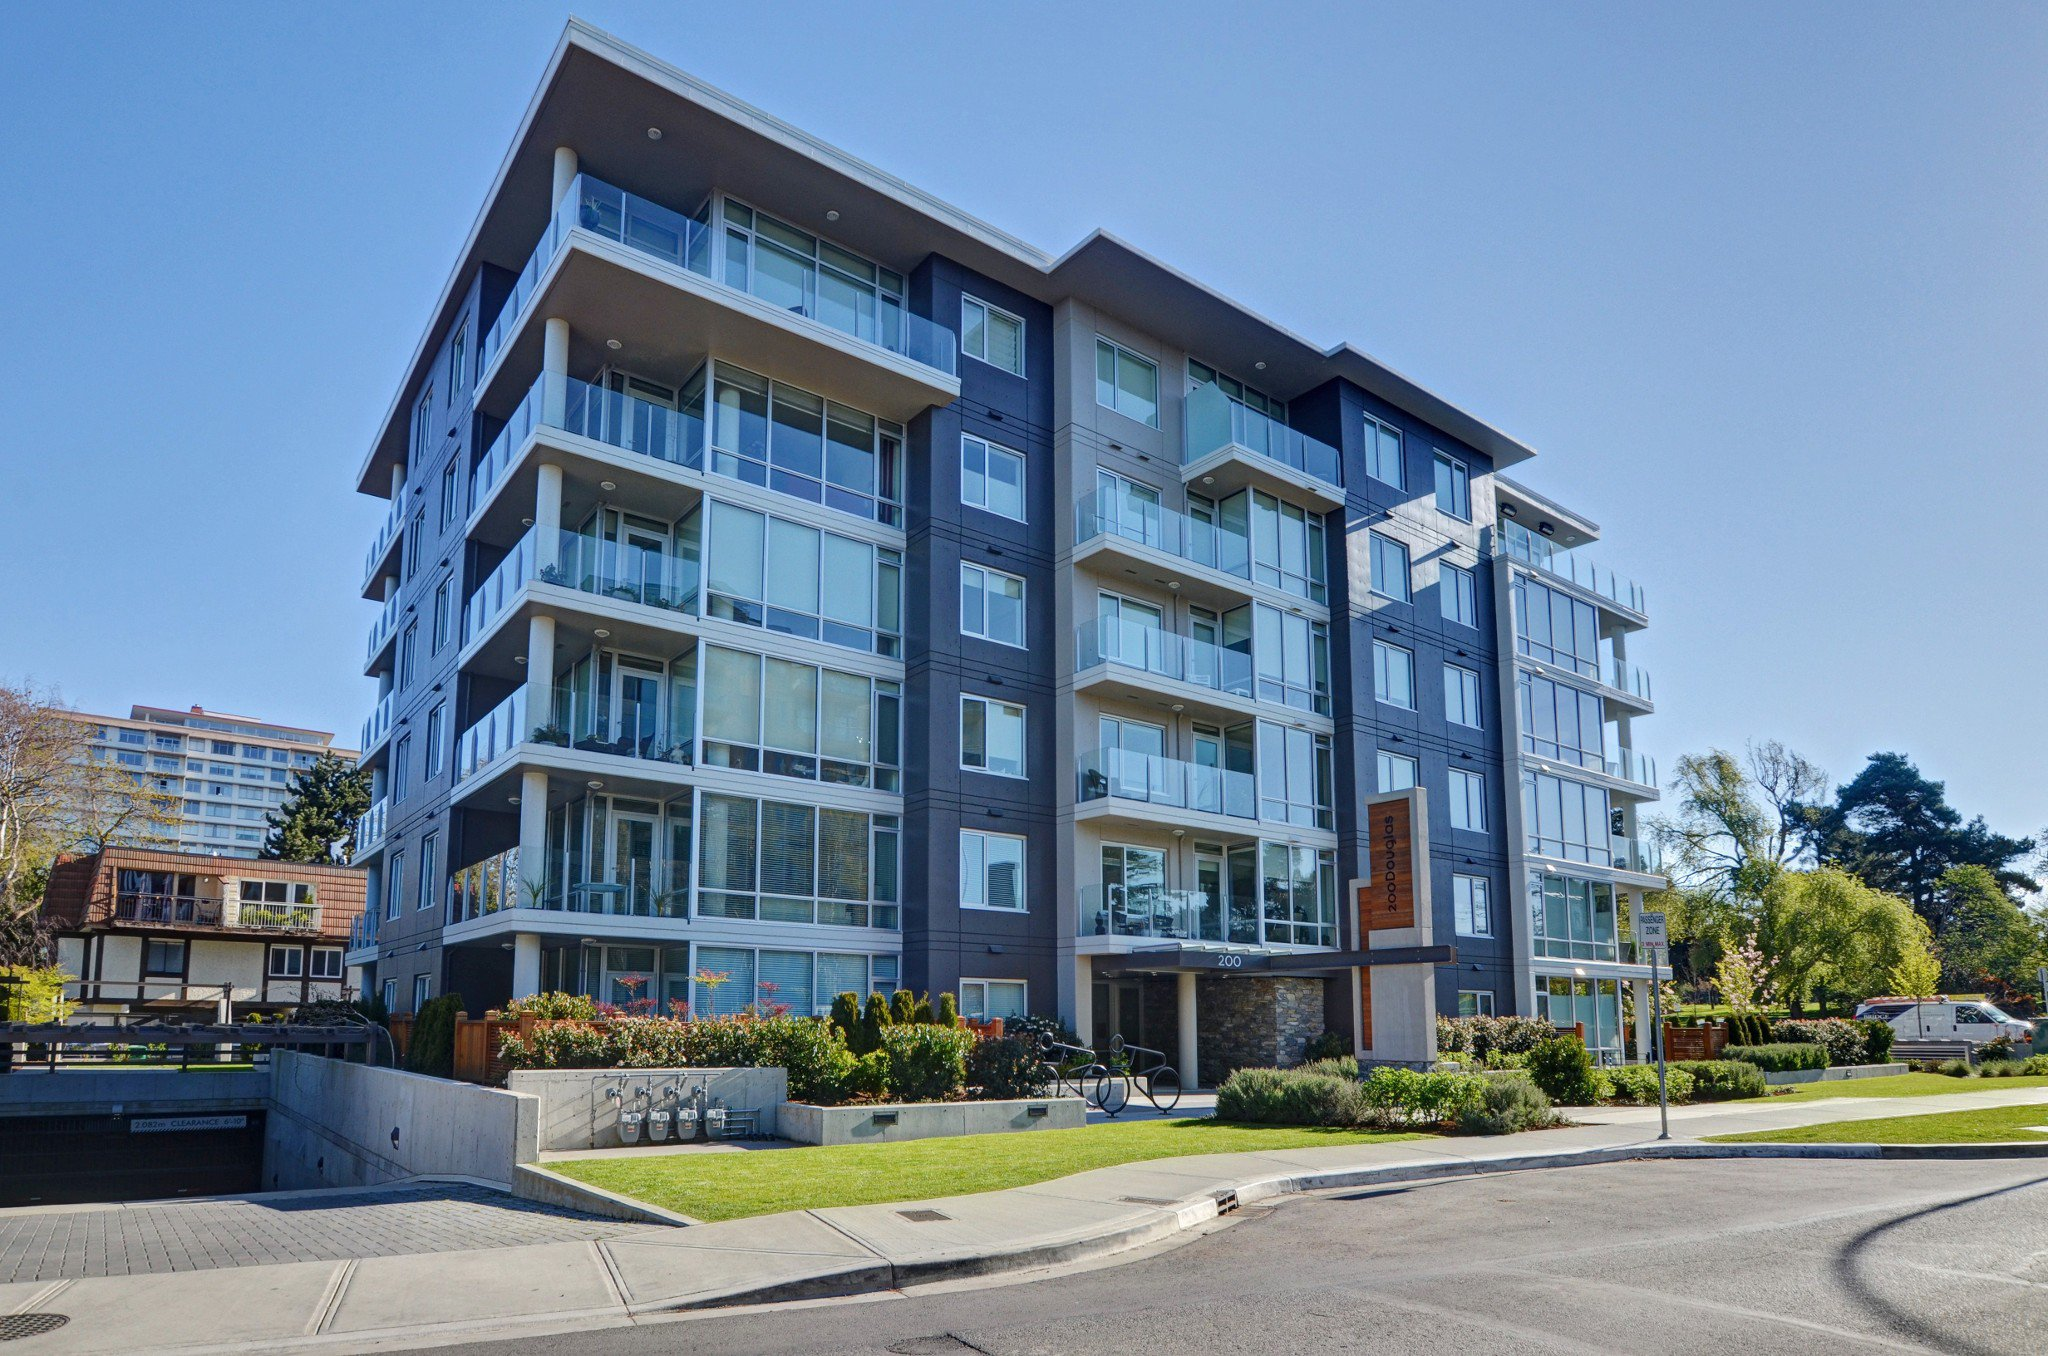 Main Photo: 105 200 Douglas Street in VICTORIA: Vi James Bay Condo Apartment for sale (Victoria)  : MLS®# 420559